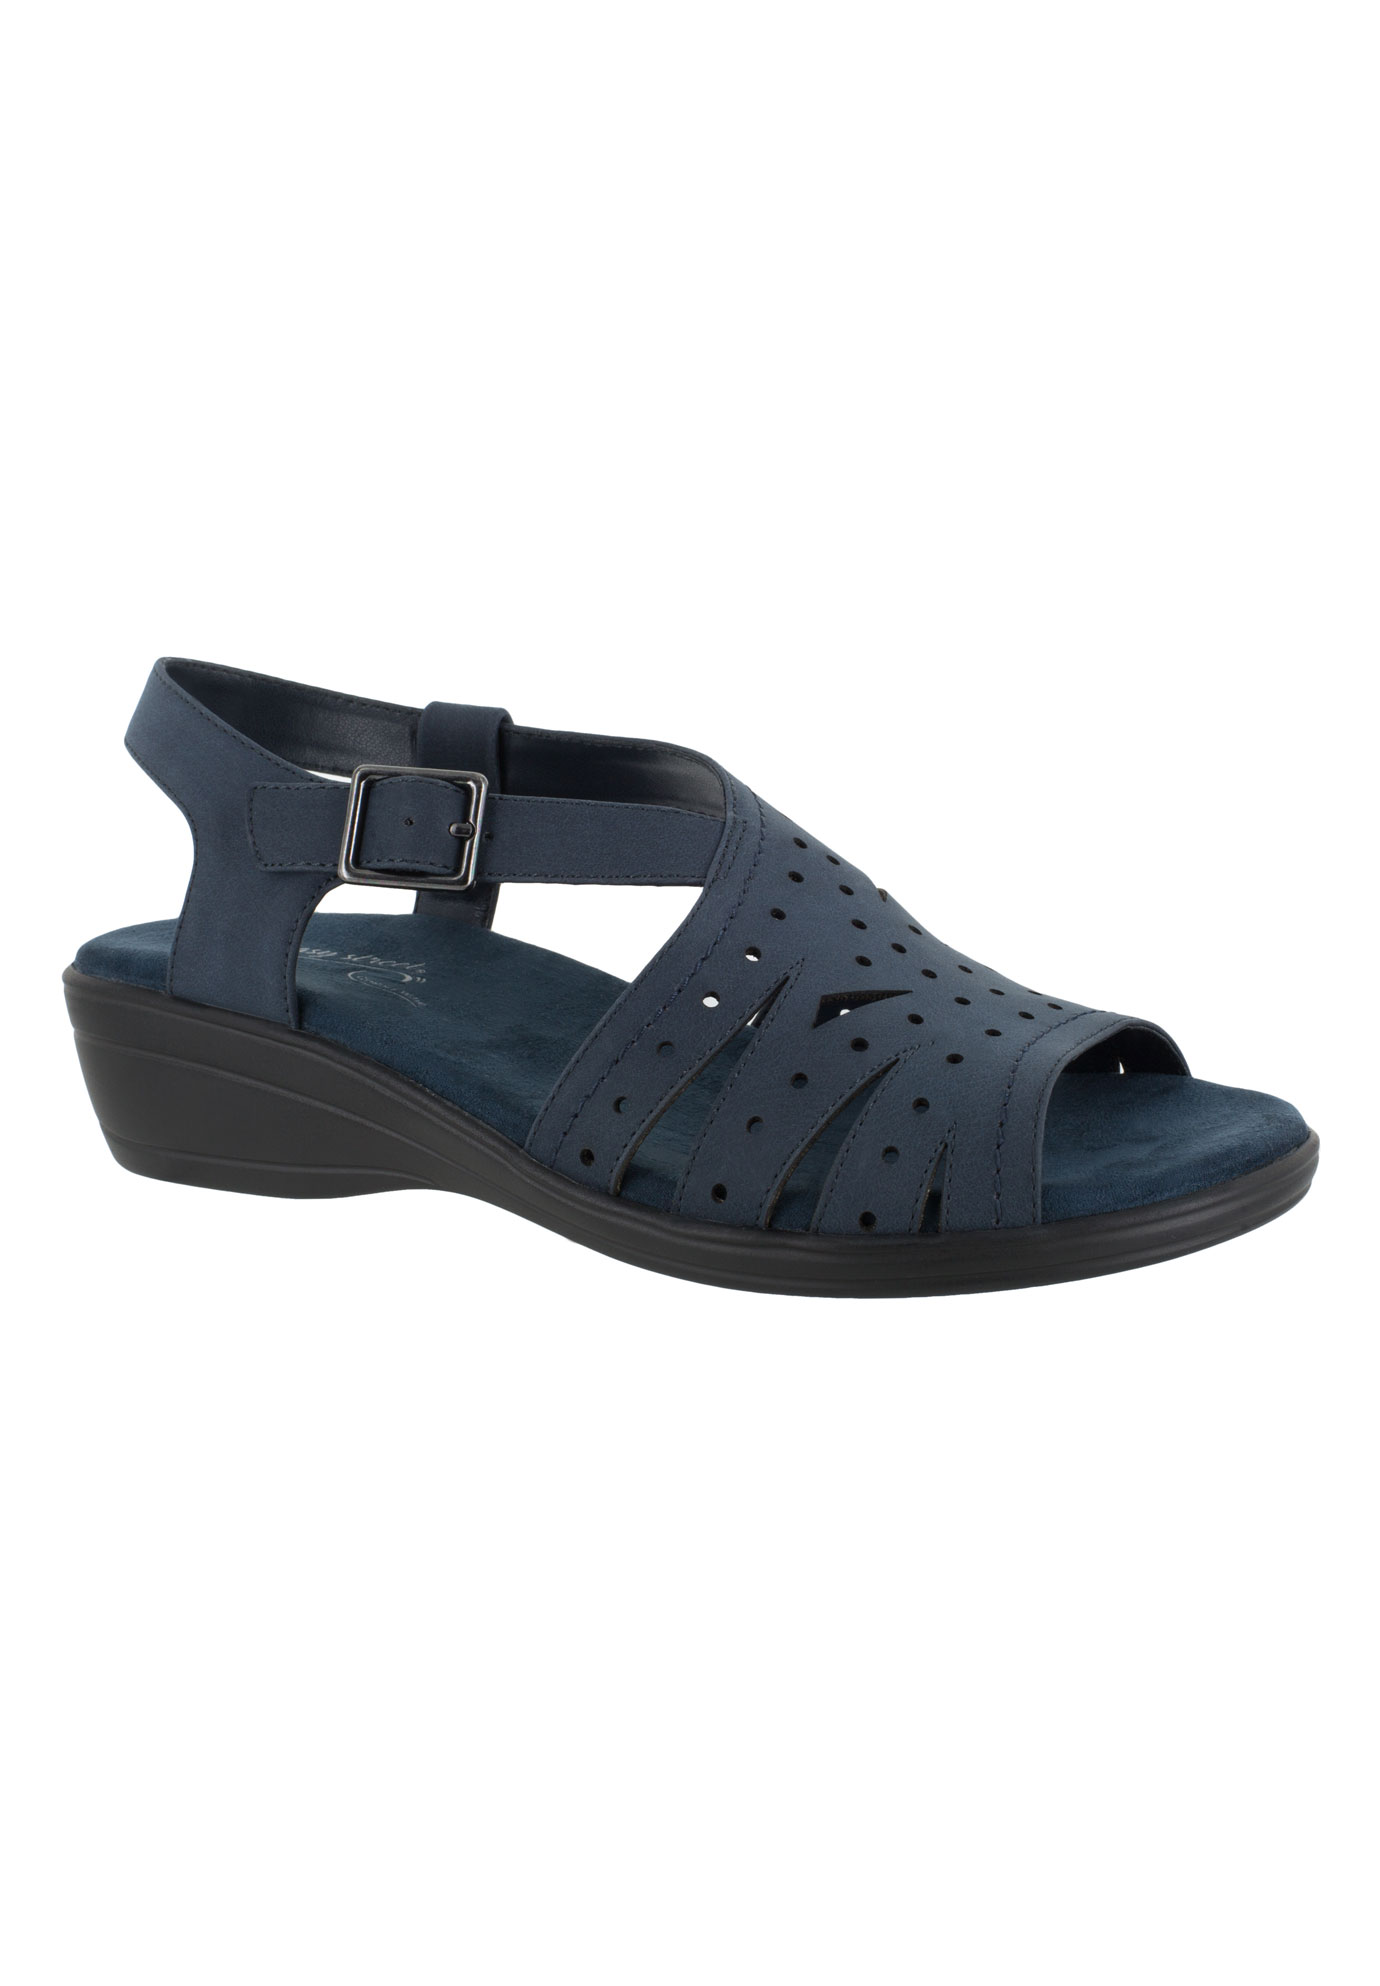 Roxanne Sandals by Easy Street®, NAVY, hi-res